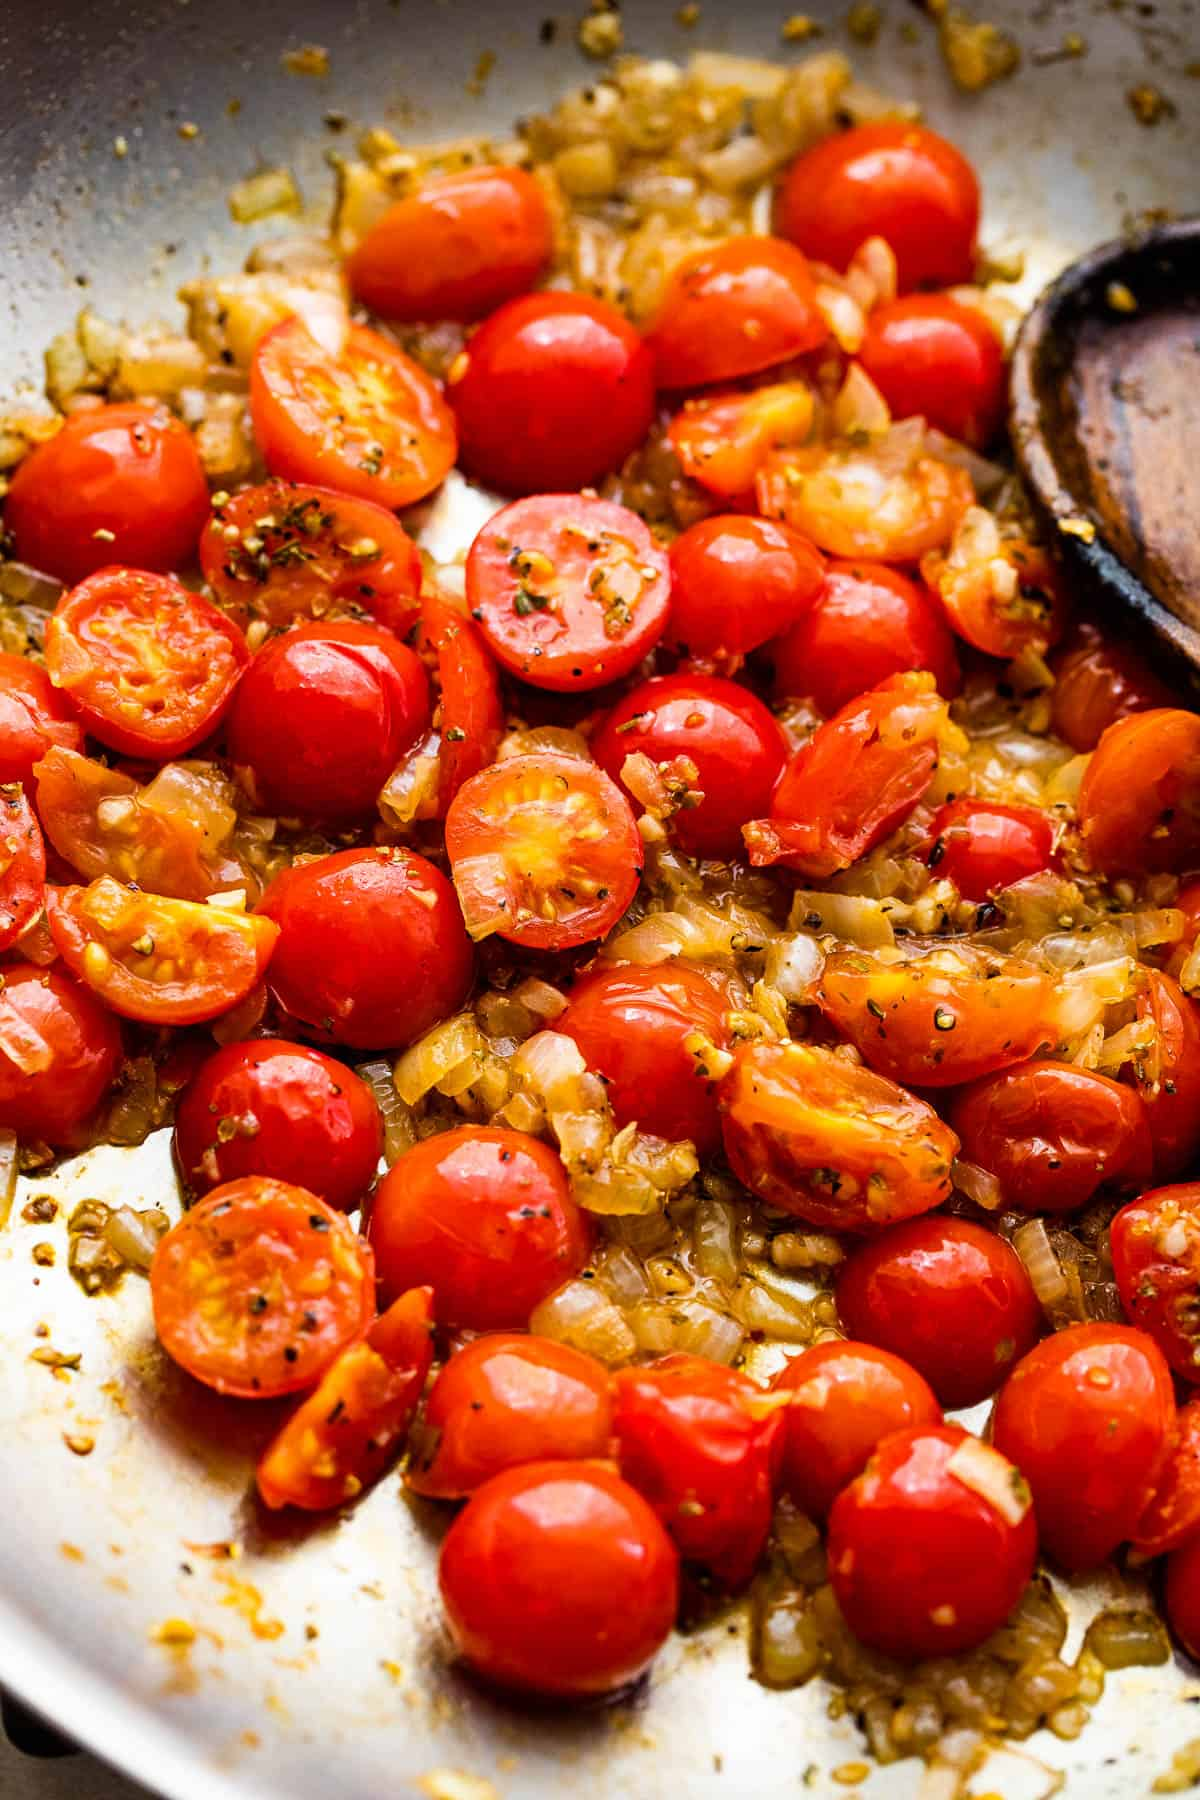 cooking halved cherry tomatoes in a skillet